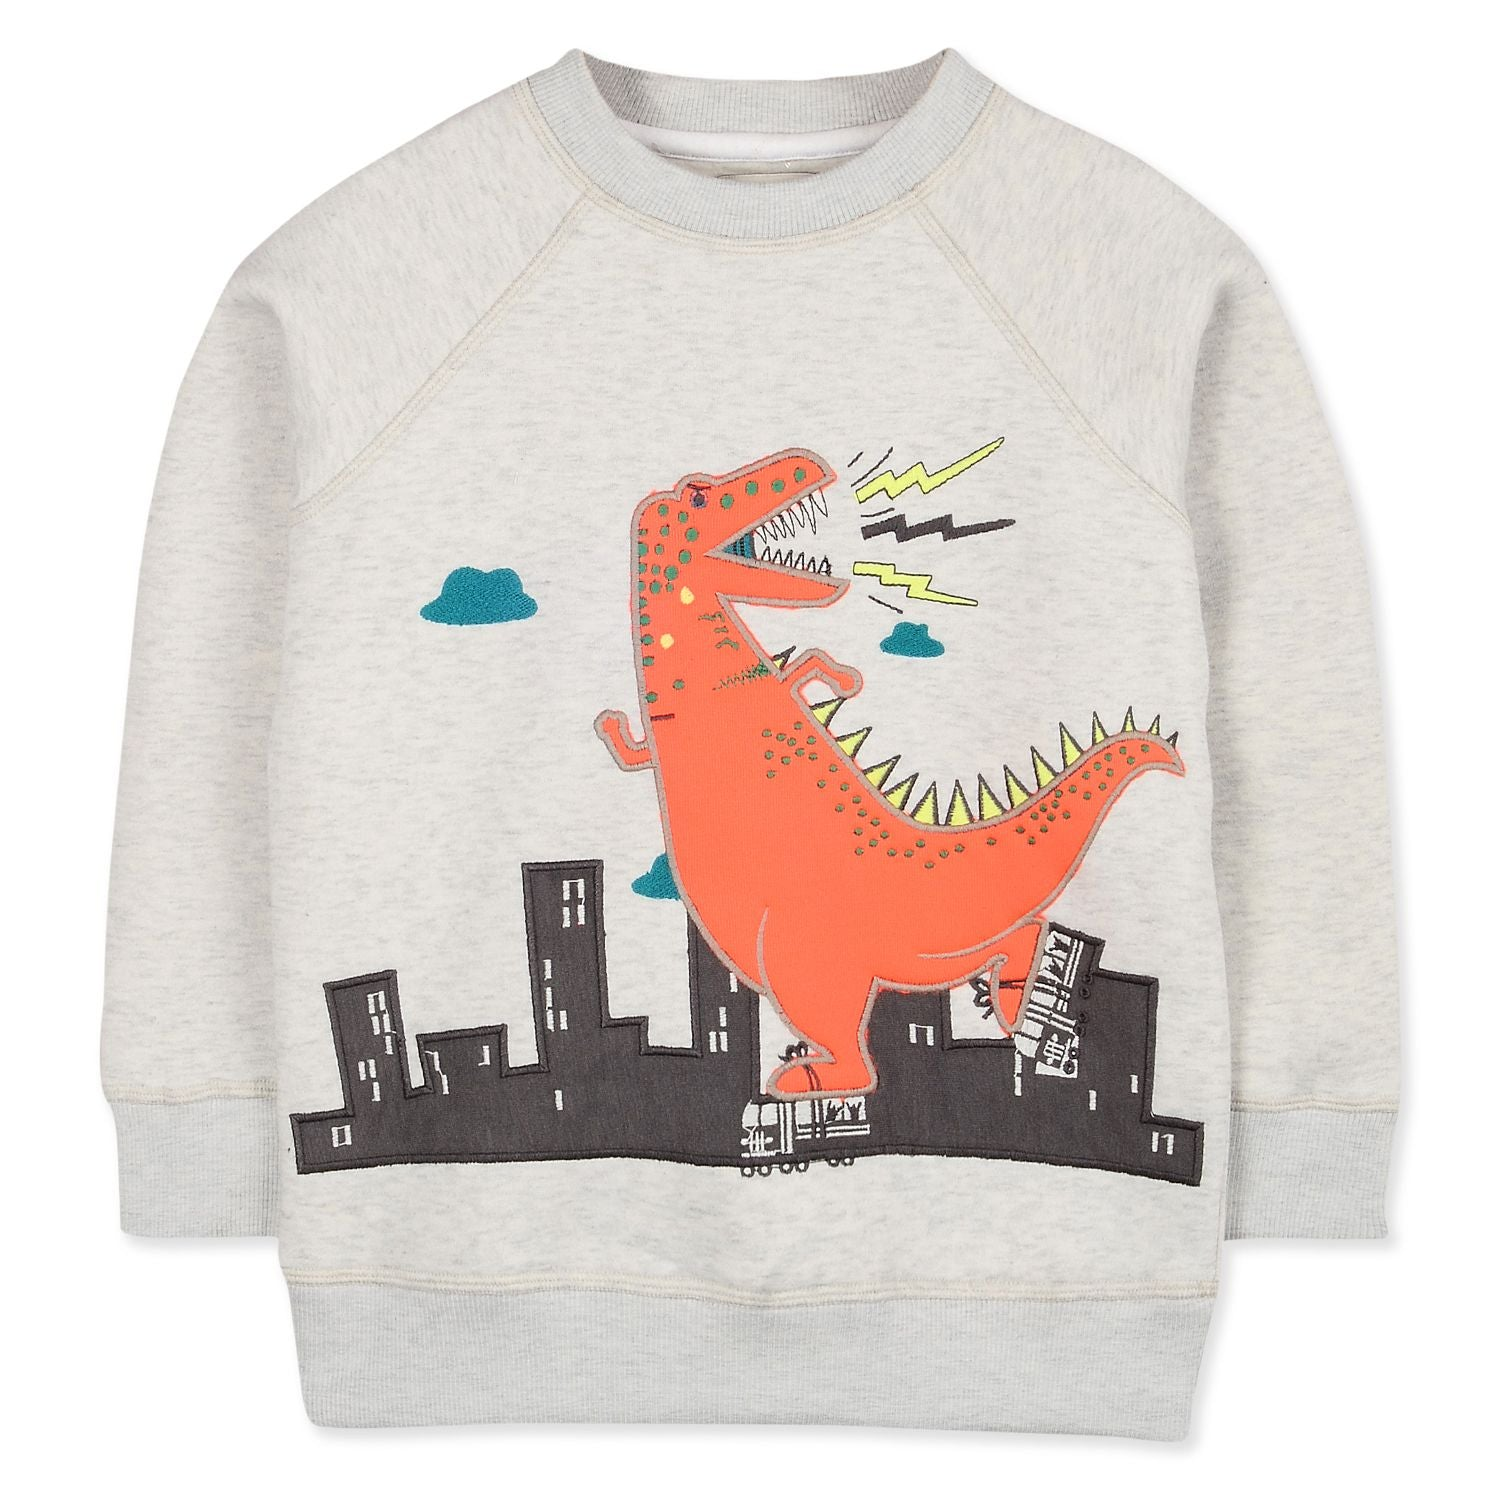 Singing Dino Sweatshirt for Boys